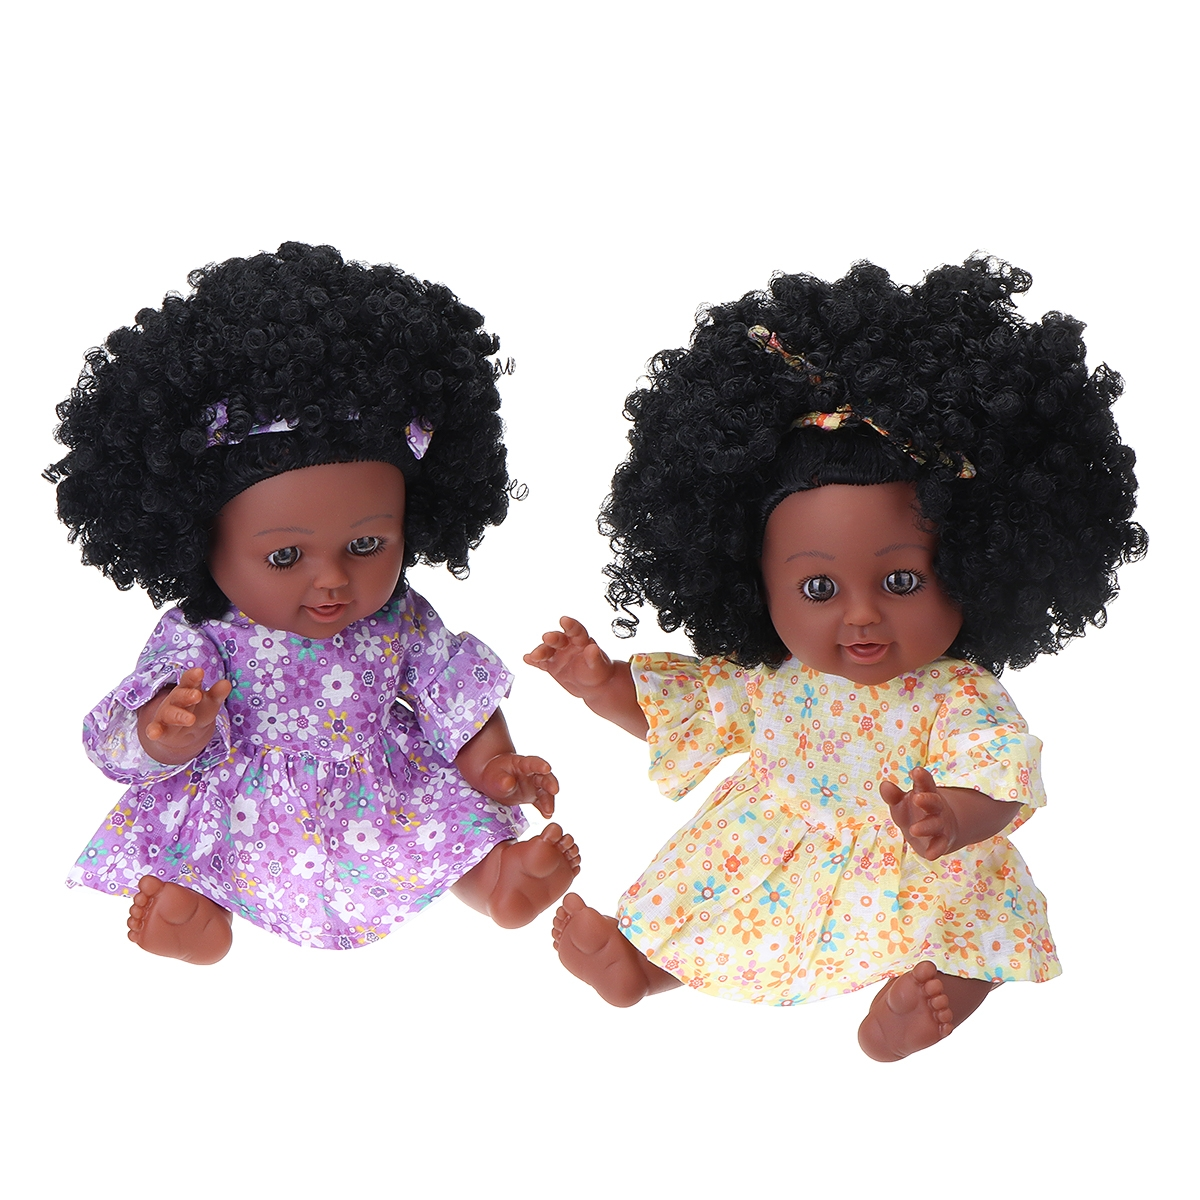 12Inch Soft Silicone Vinyl PVC Black Baby Fashion Doll Rotate 360° African Girl Perfect Reborn Doll Toy for Birthday Gift